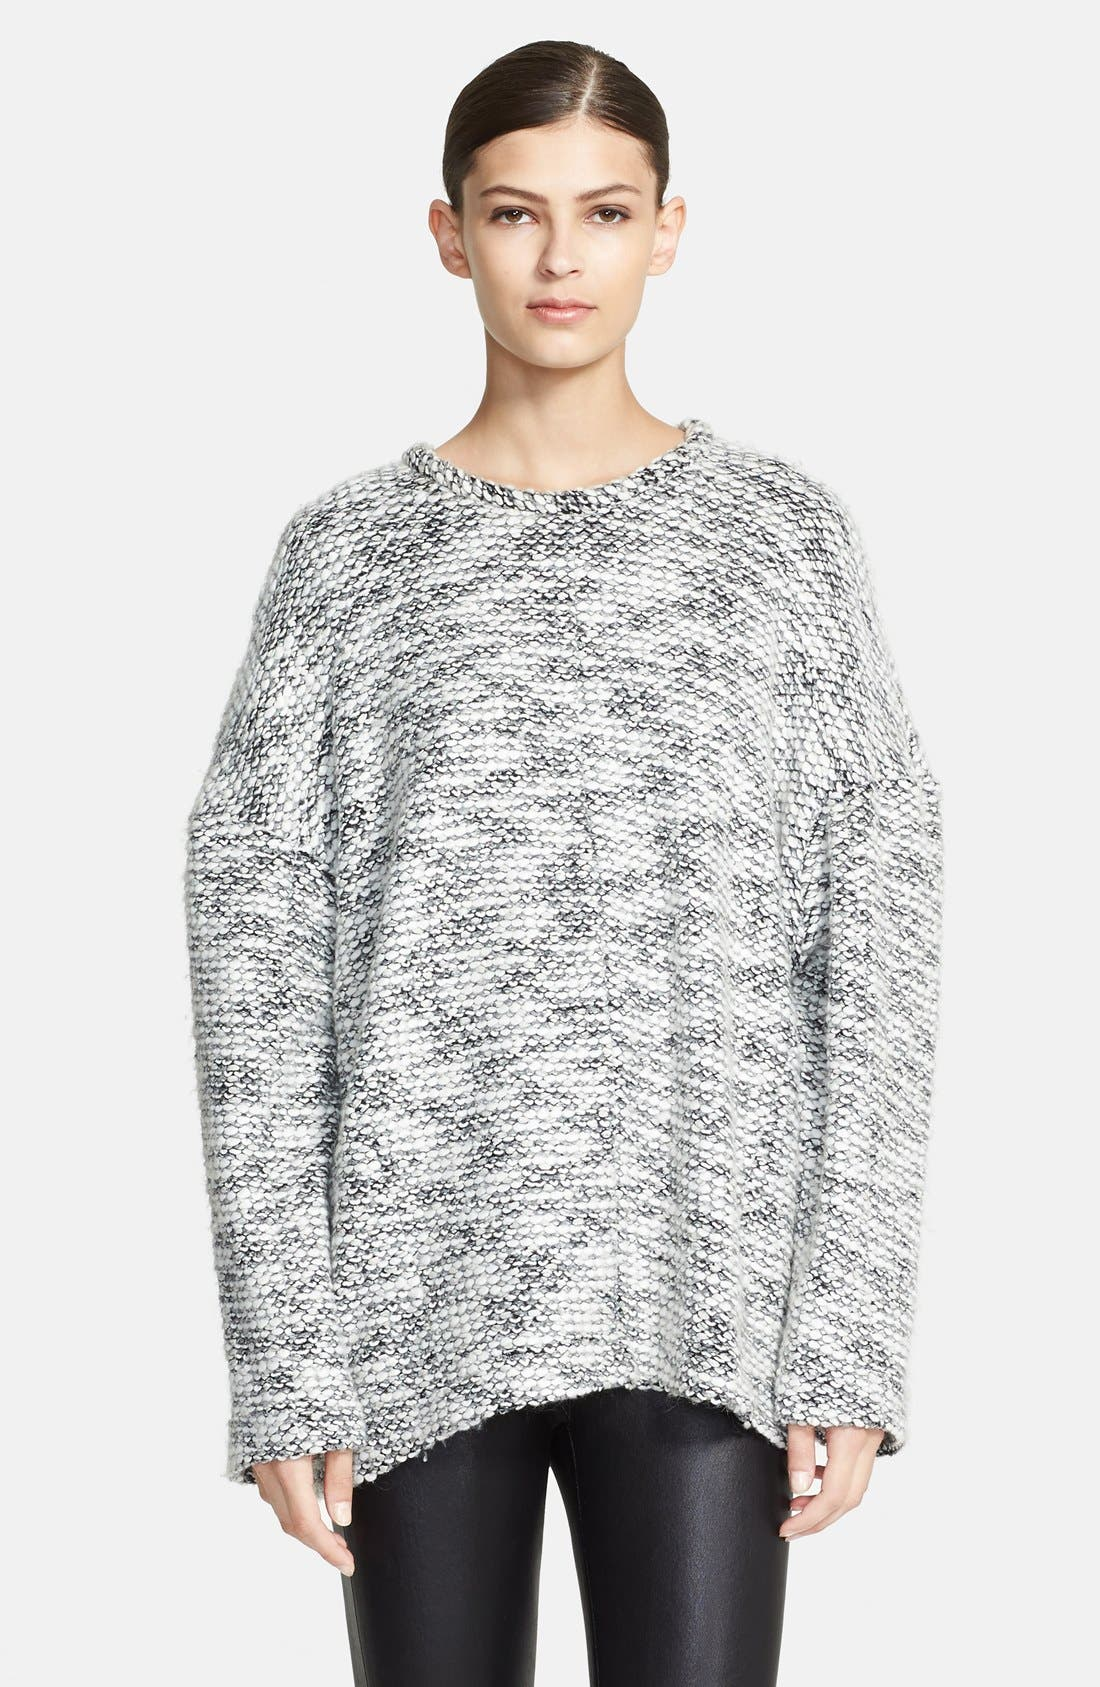 HELMUT LANG Chunky Knit Sweatshirt, Main, color, 067